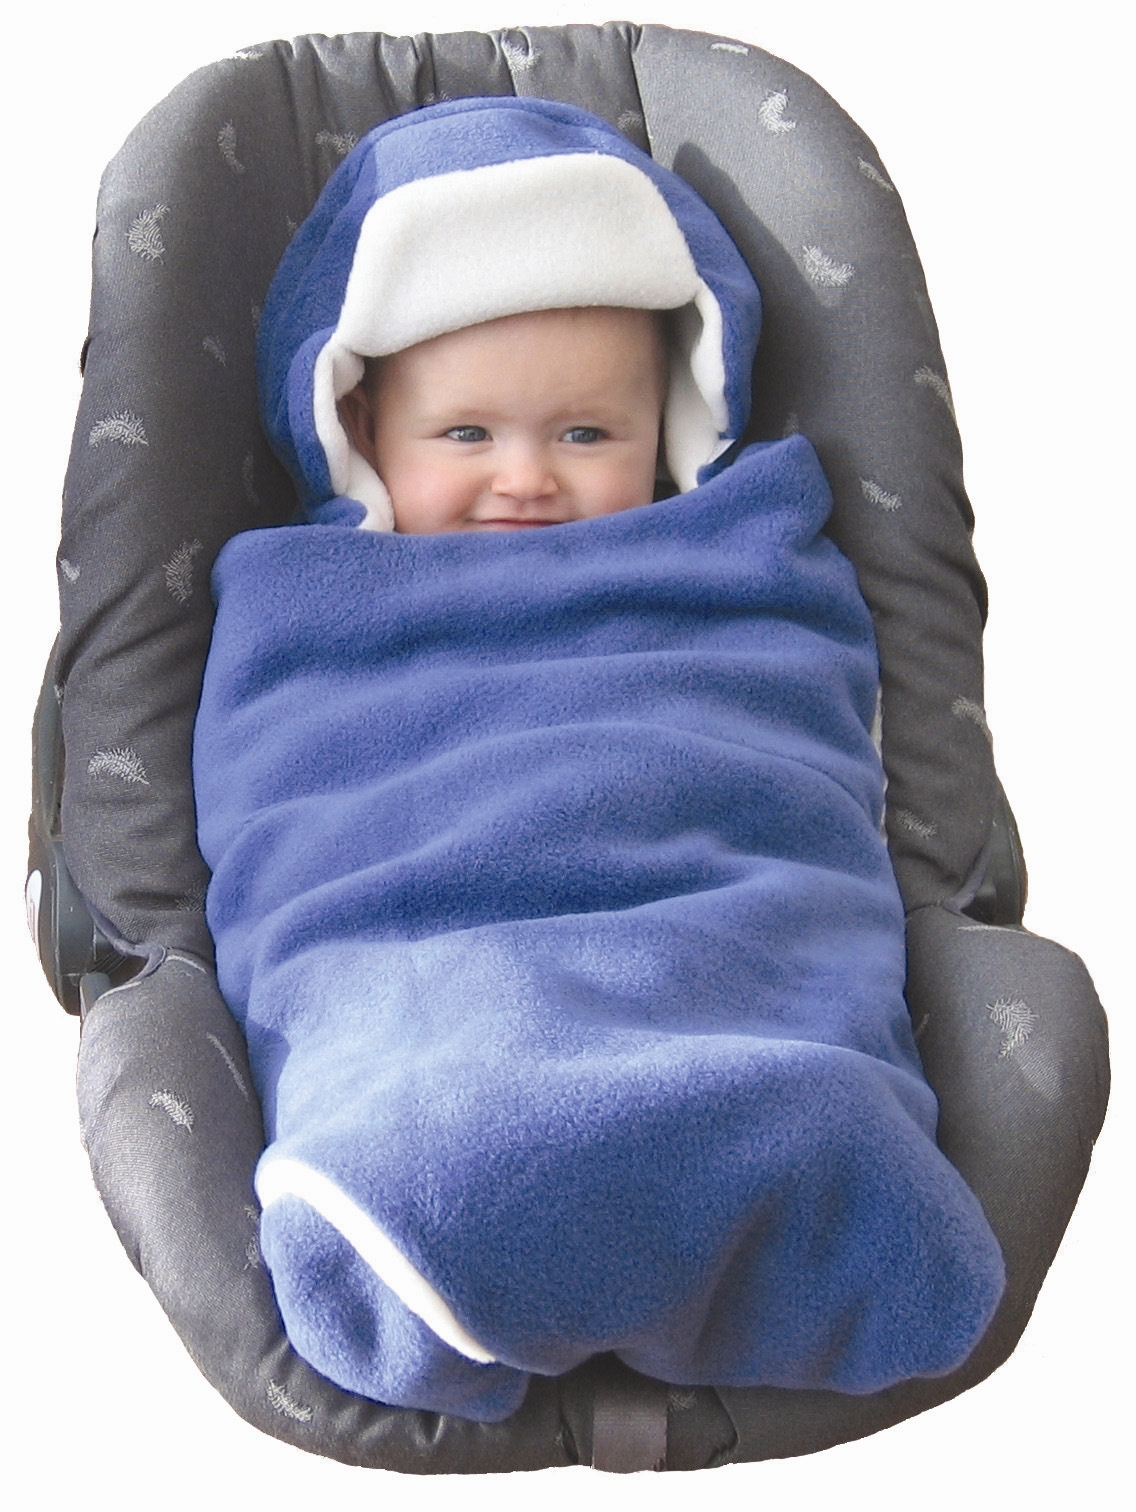 infant bouncy chair chairs for baby morrck's hoodie keeps babies and tots snug this autumn / winter